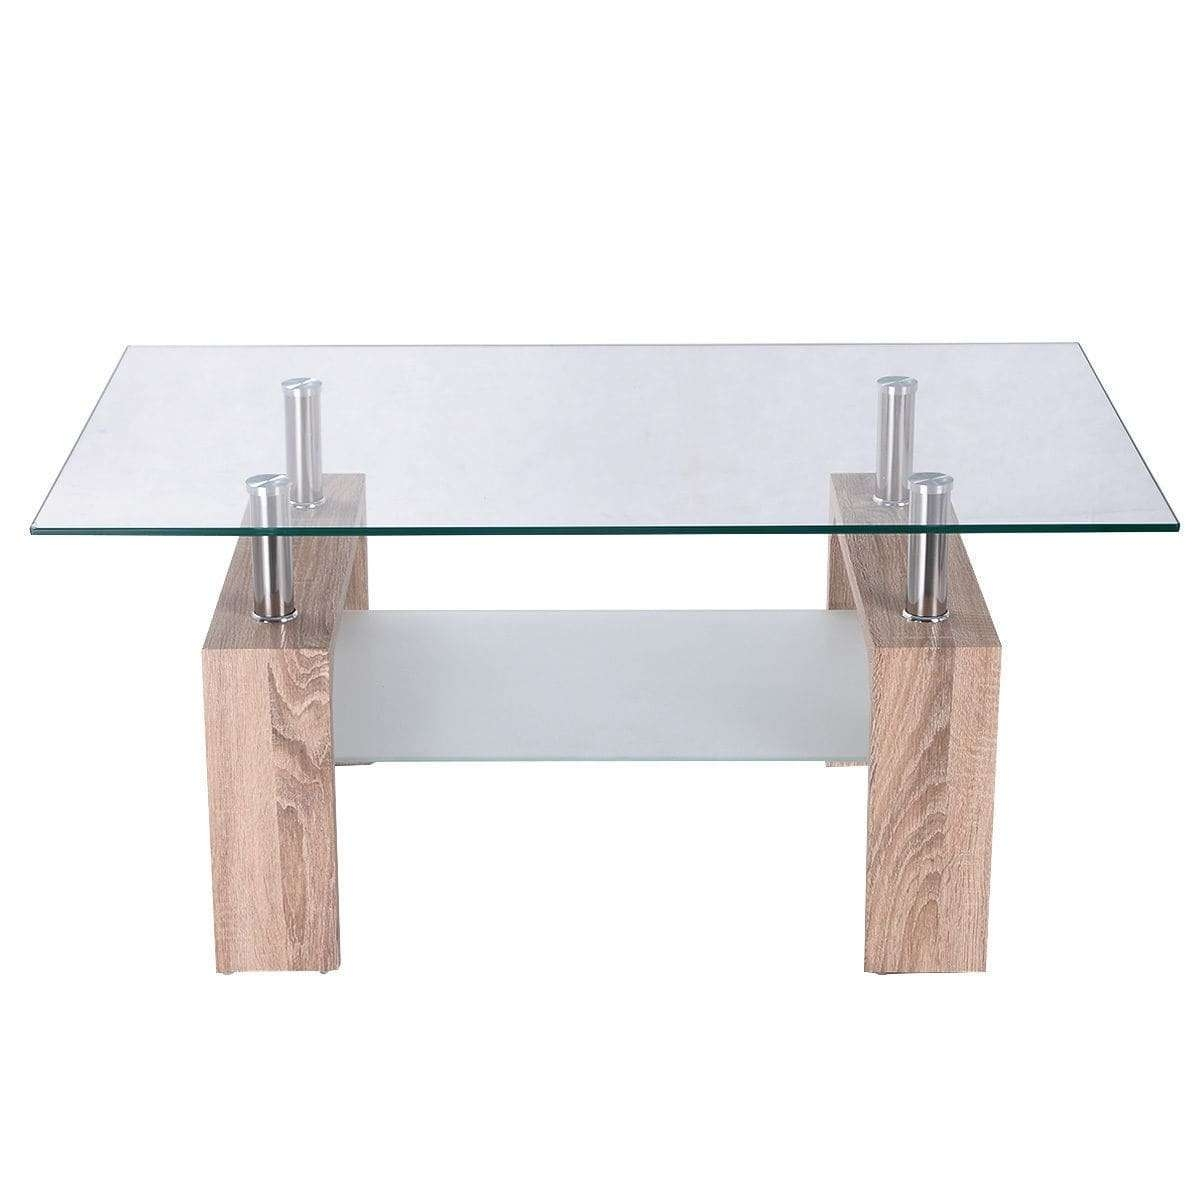 Costway Rectangular Glass Coffee Table Wood W/ Shelf ,tea Table Intended For Most Popular Rectangle Glass Coffee Table (View 9 of 20)